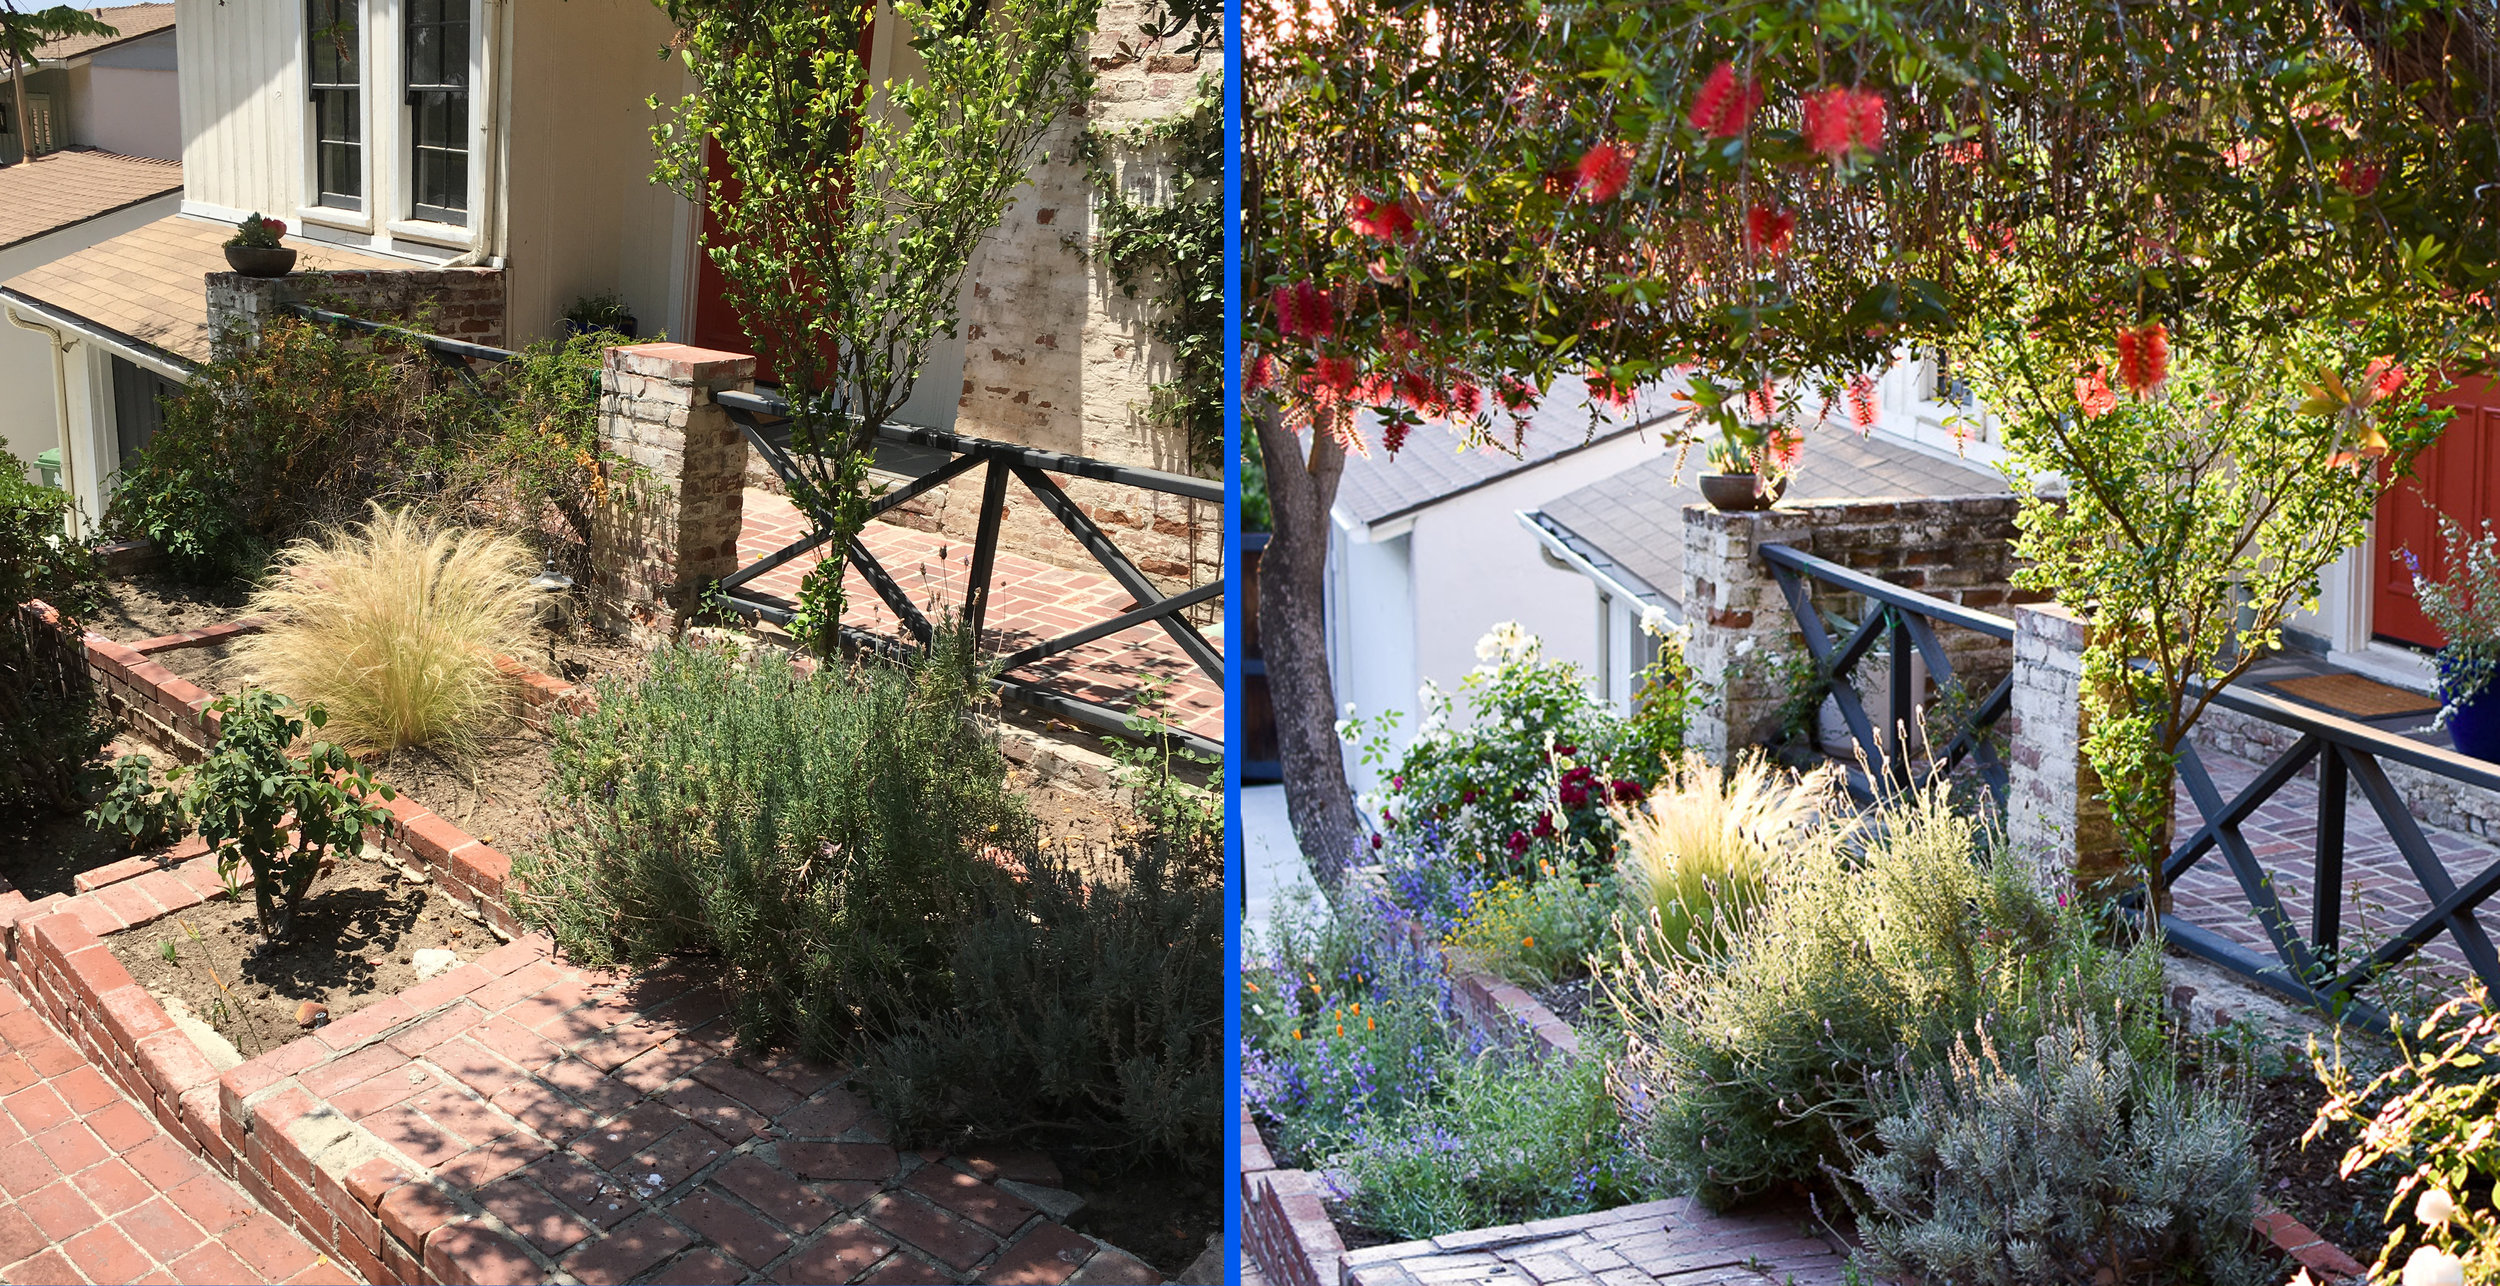 BEFORE & AFTER:  Our client Charlie's Silver Lake garden had all the common problems: degraded, dried-up soil, poorly-pruned shrubs, aggressive invasives. After a little Saturate TLC, it's now a vibrant, healthy space that makes you feel alive!